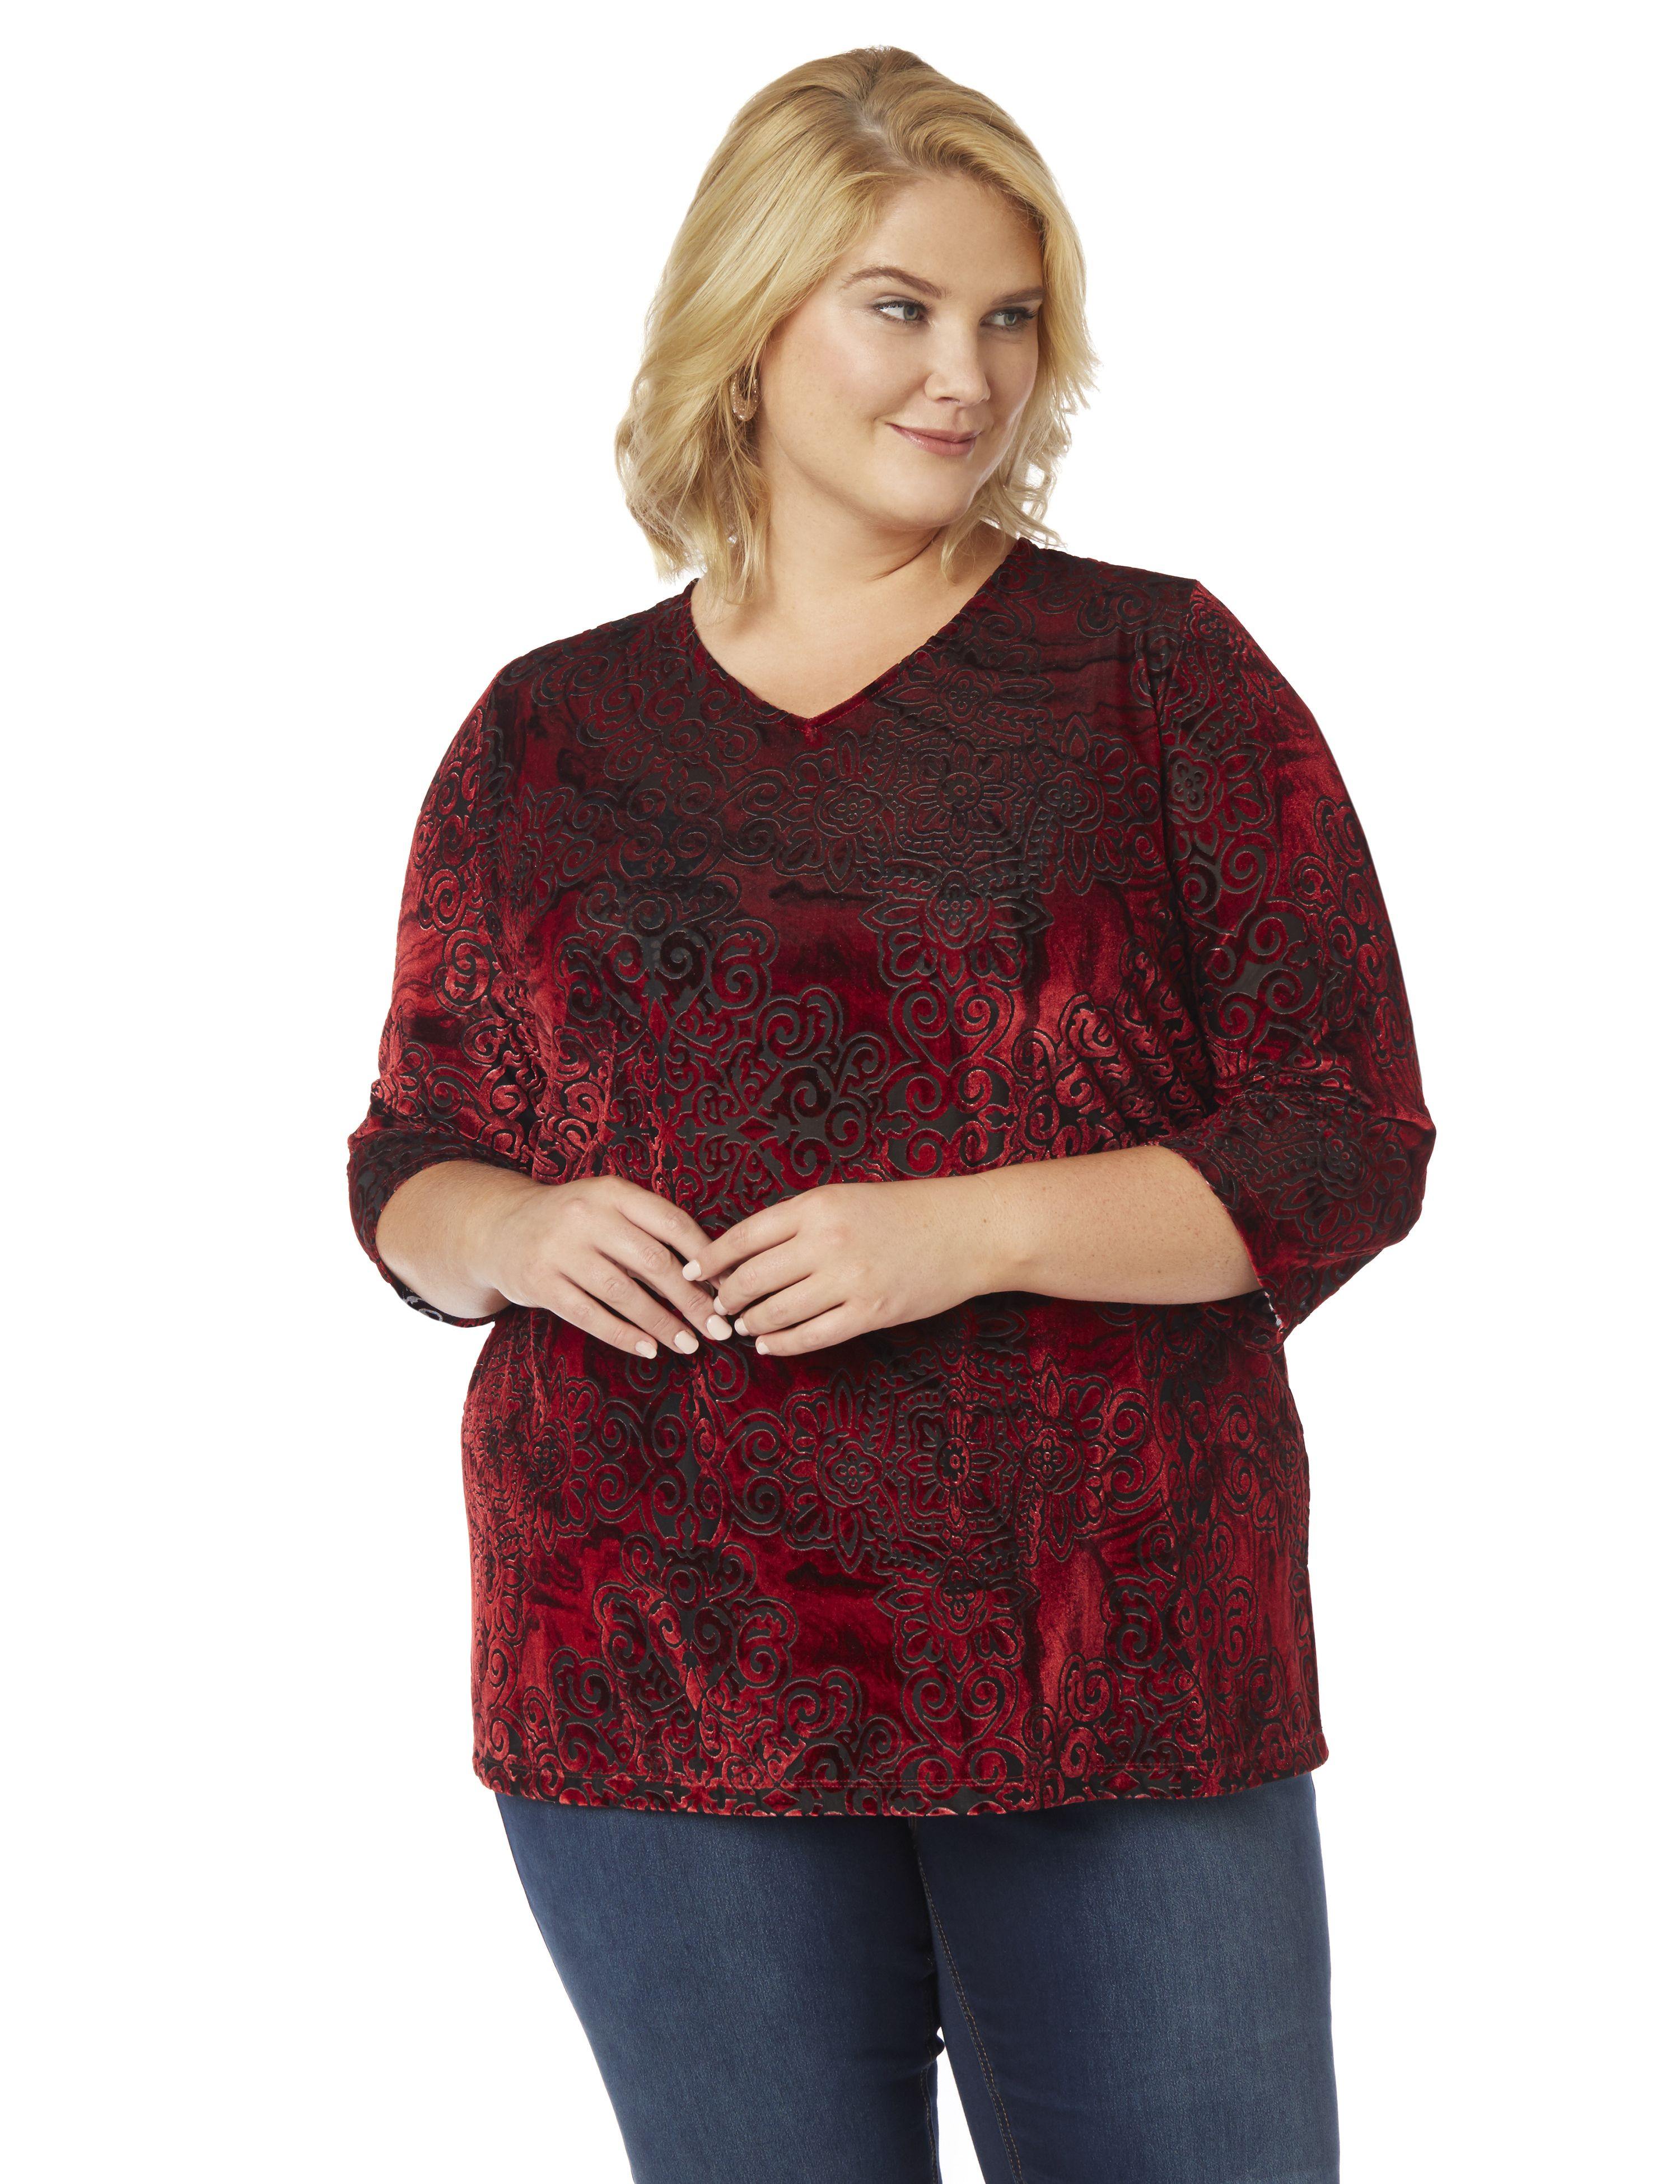 Velvet Paisley Top 1084911 3QS VNeck Burnout Velvet A/ MP-300090350